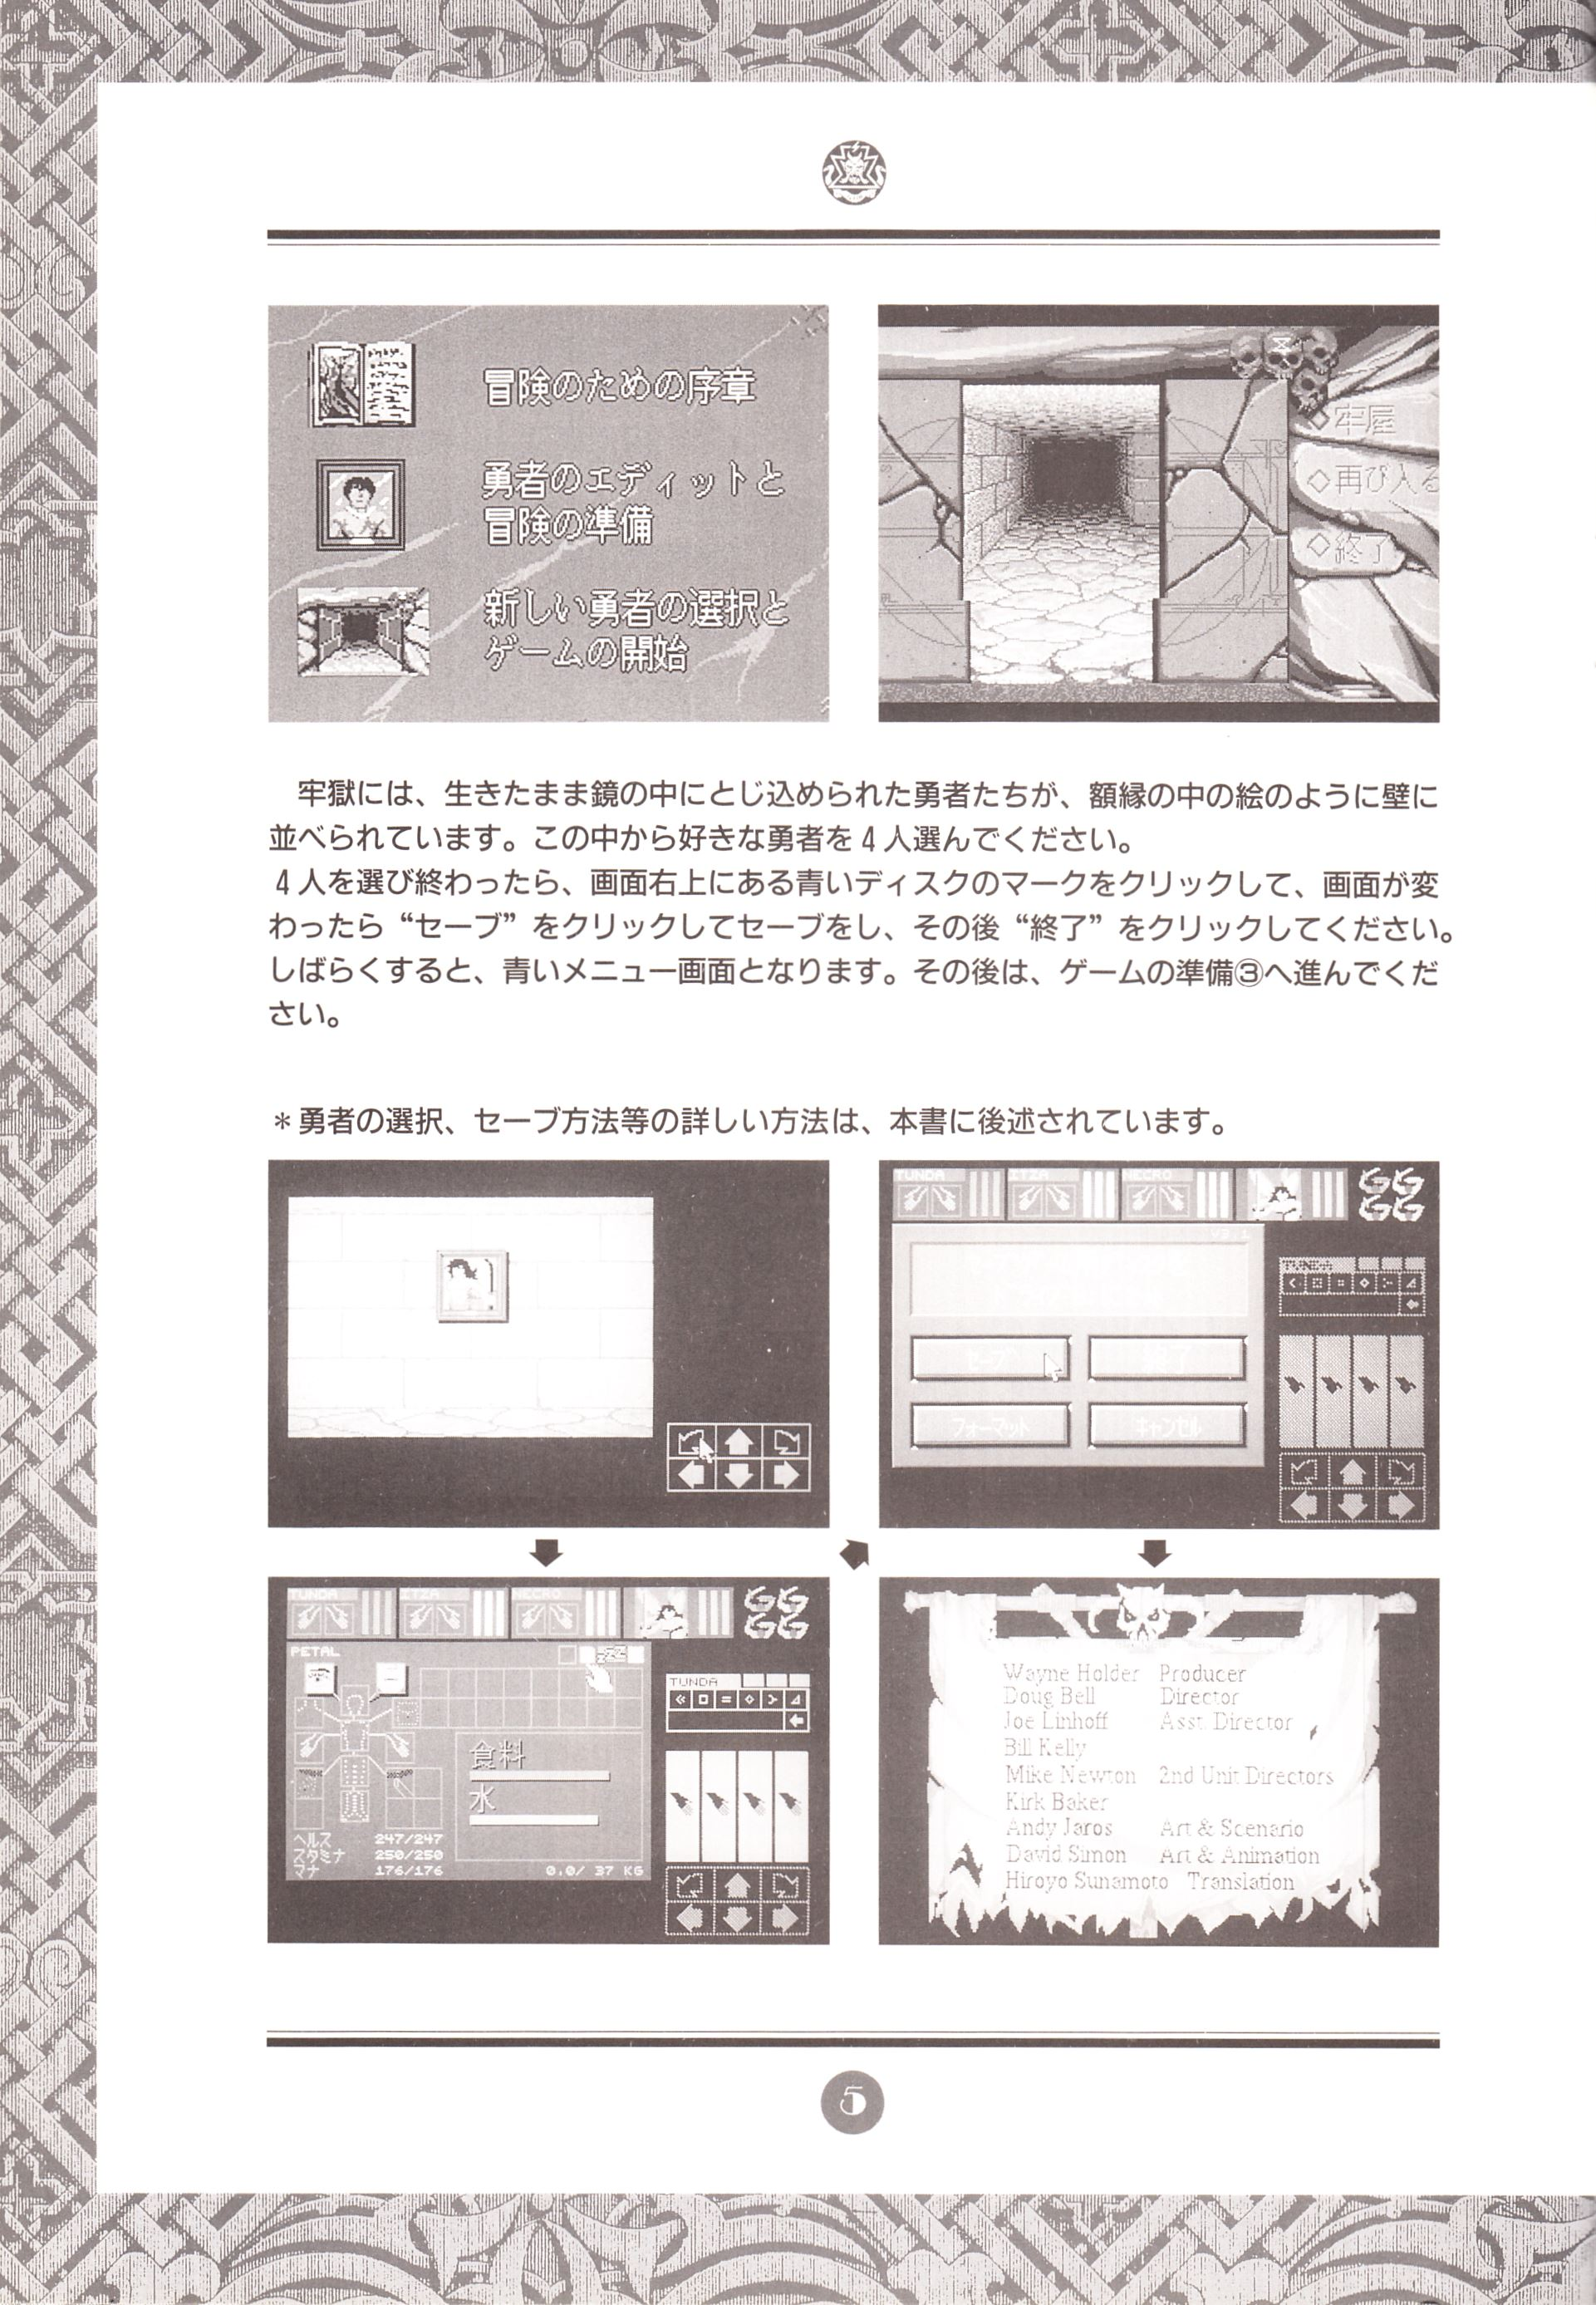 Game - Chaos Strikes Back - JP - PC-9801 - 3-5-inch - An Operation Manual - Page 008 - Scan